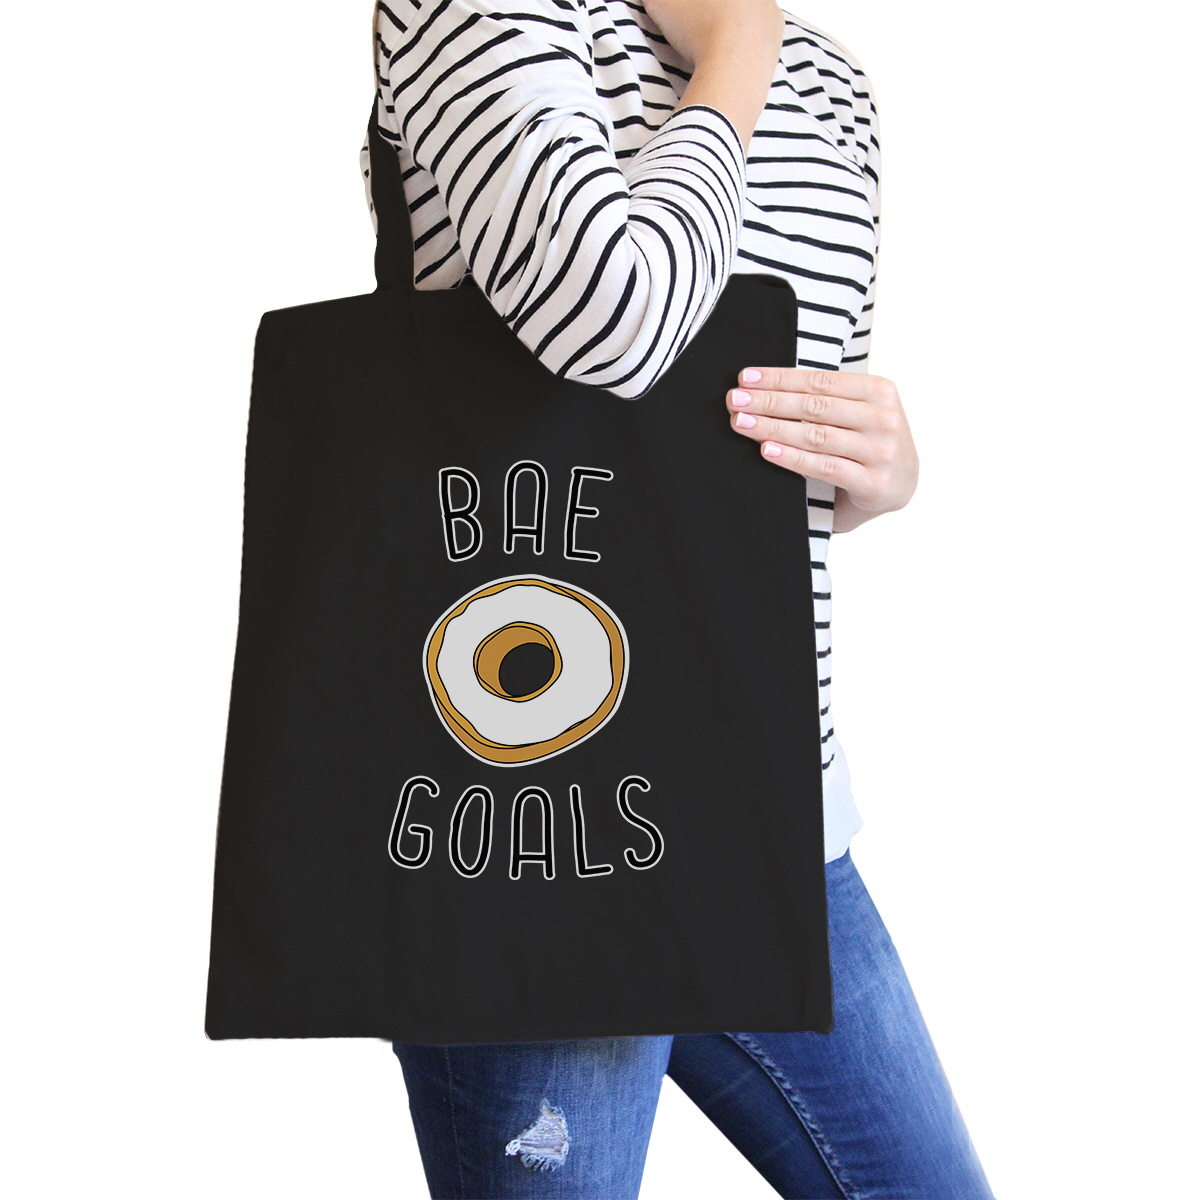 Bae Goals Black Cotton Eco Bag Cute Graphic Birthday Gifts For Him